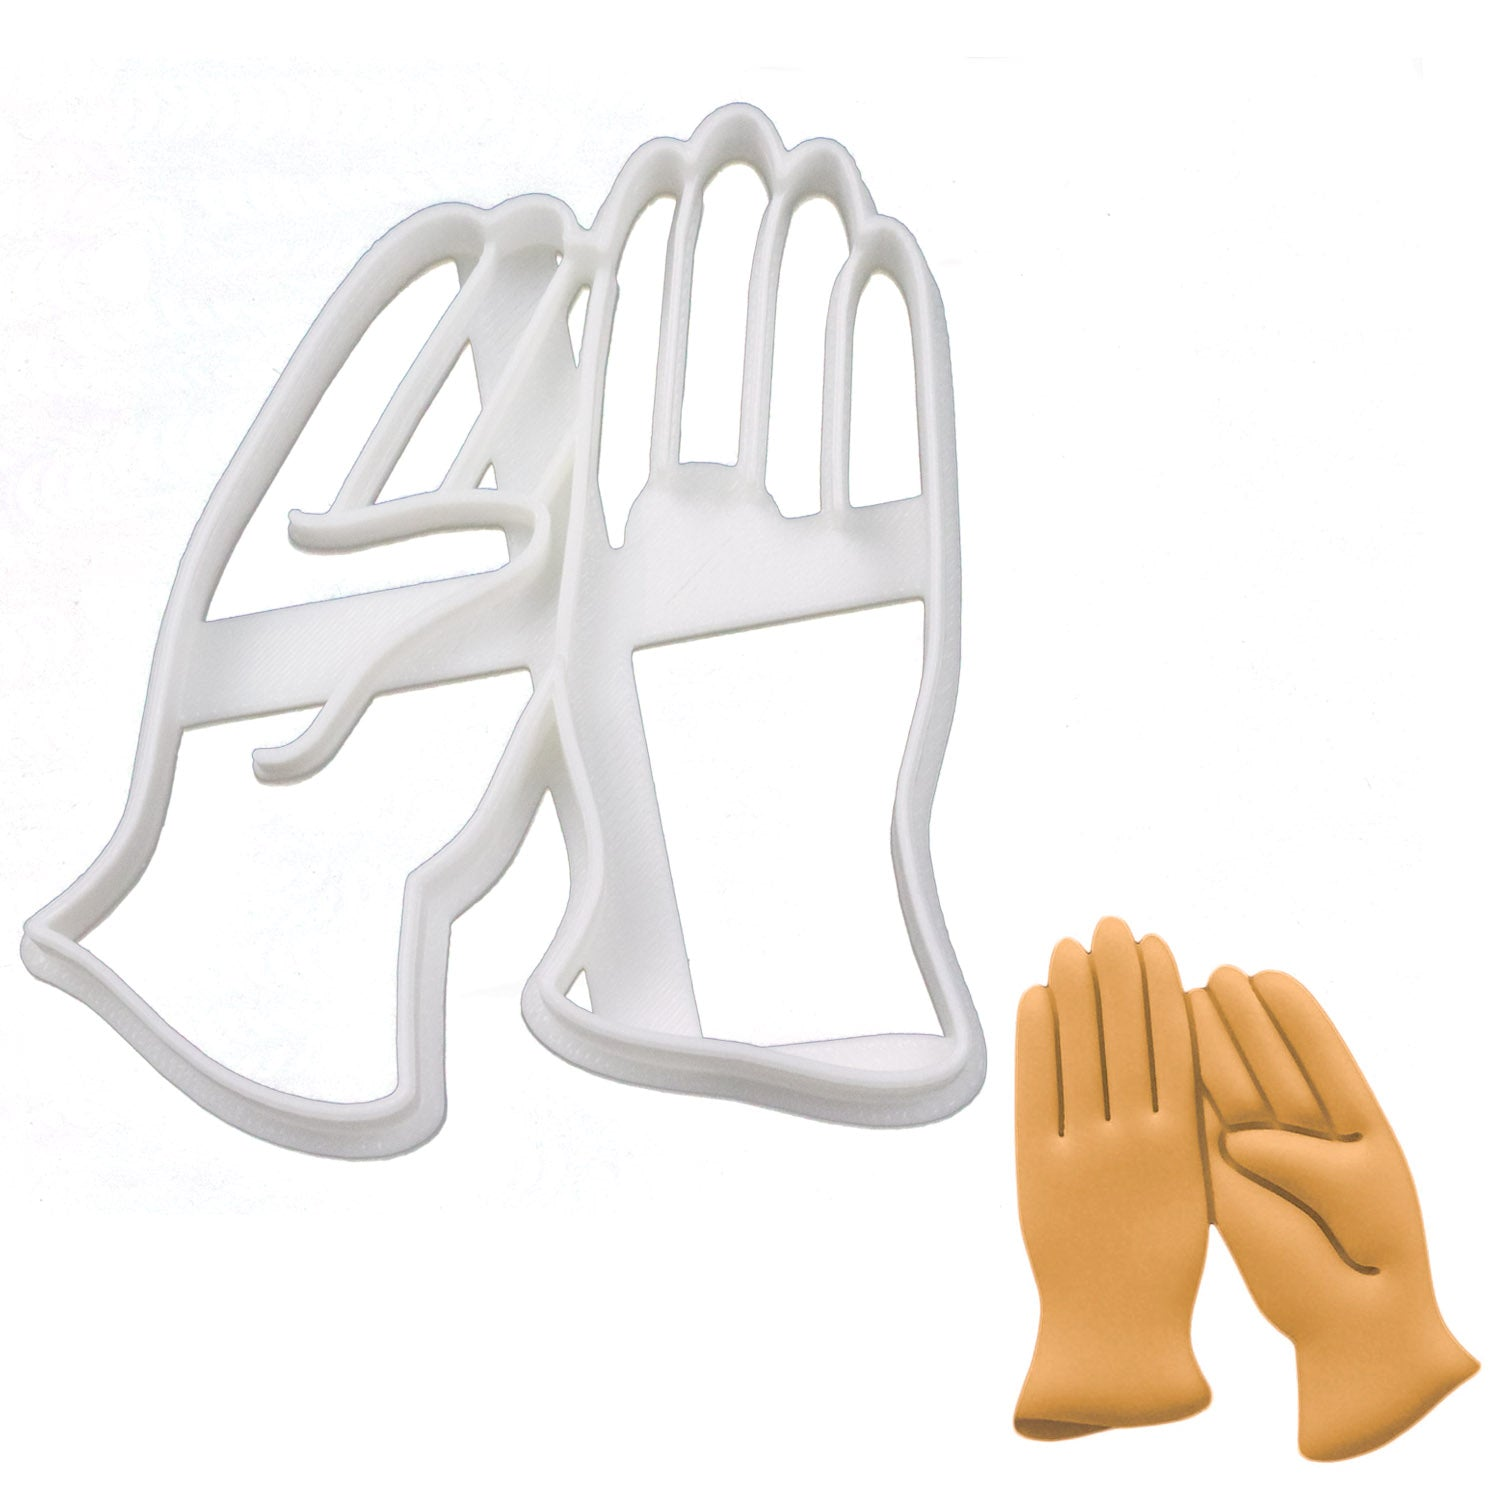 Laboratory Gloves Cookie Cutter